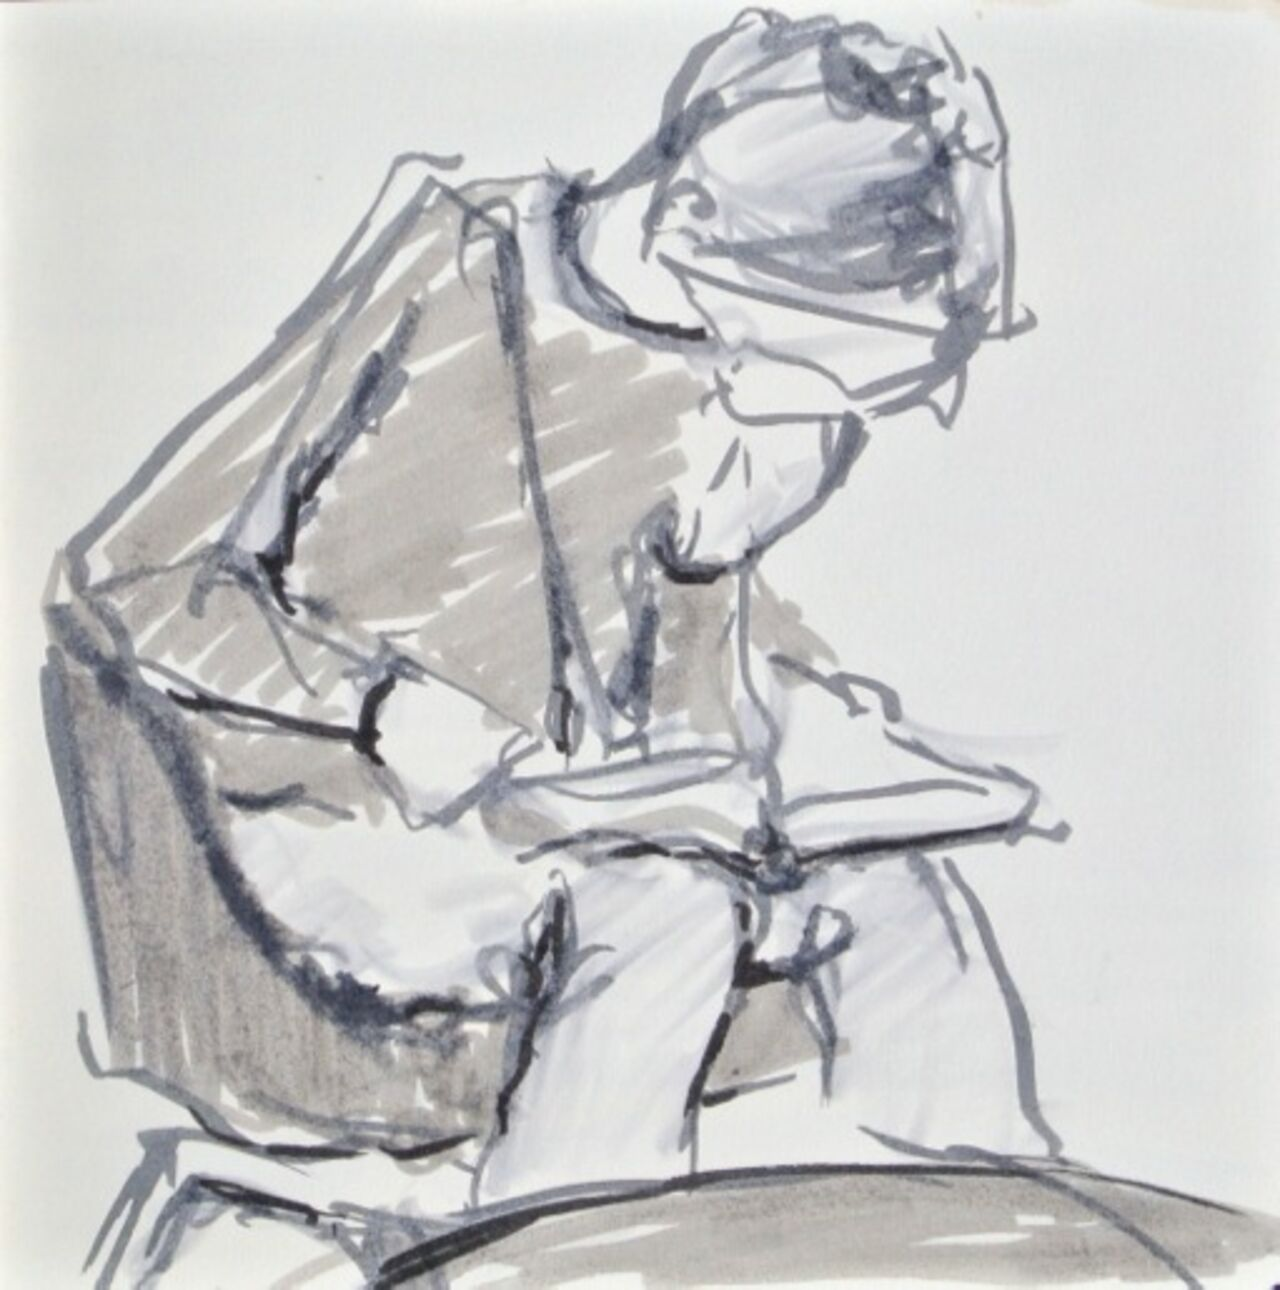 A grey sketch of a person sat down looking at something in their hands.